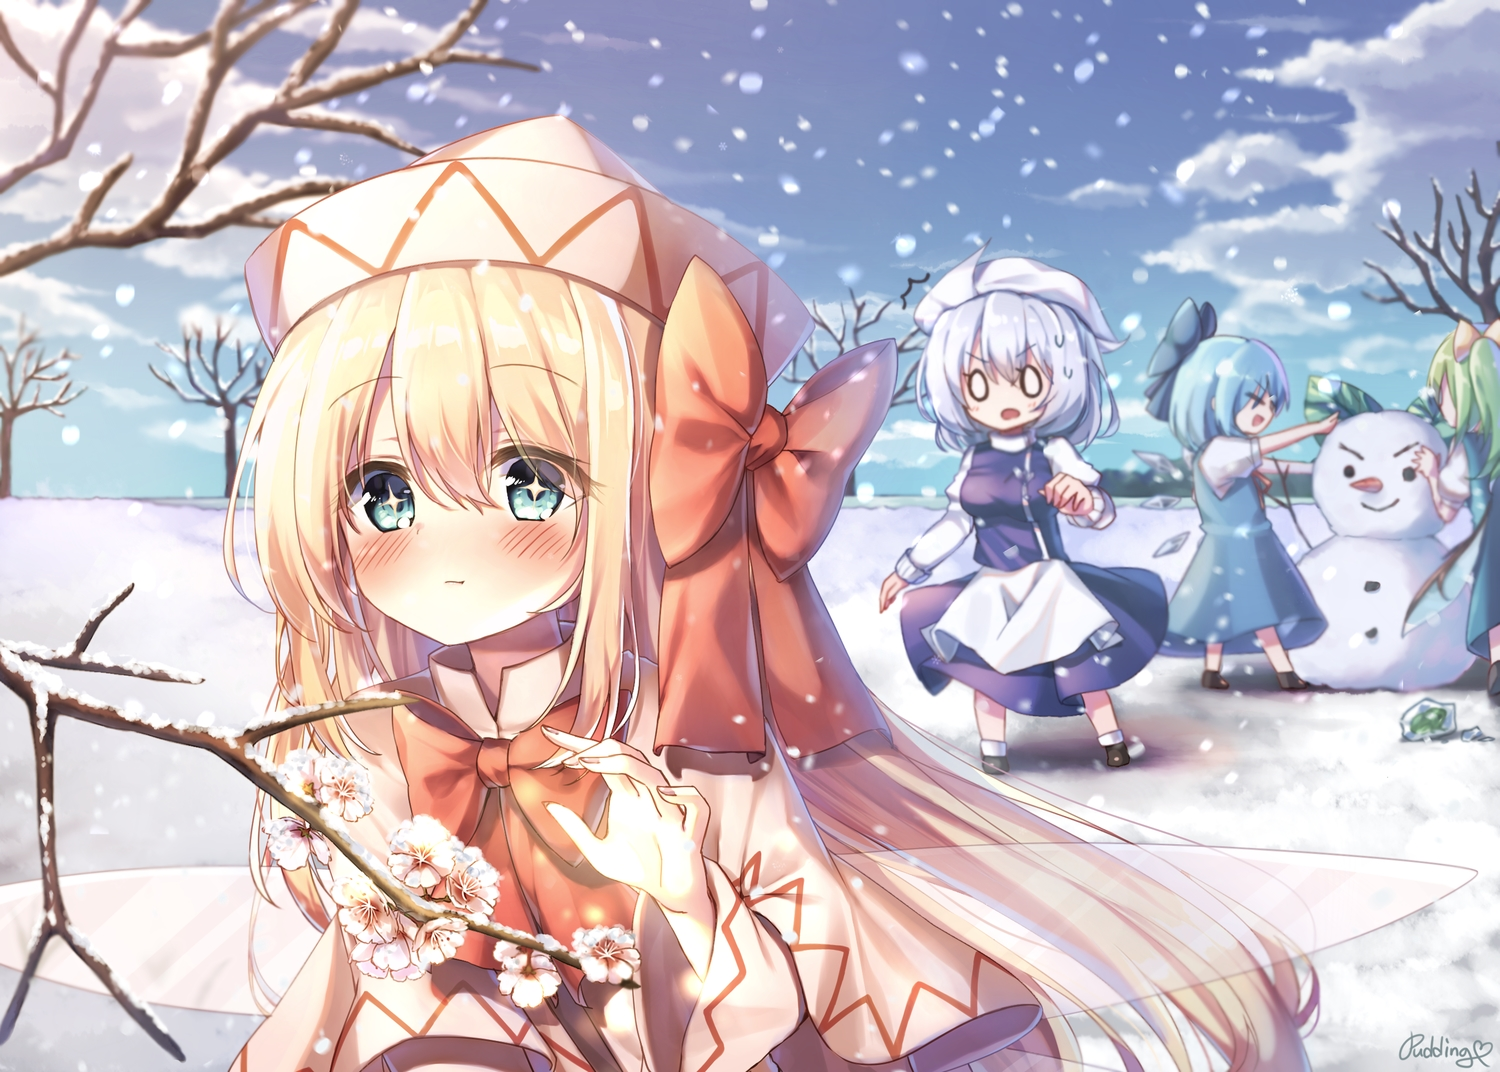 blonde_hair blue_hair blush bow cirno clouds daiyousei fairy flowers green_eyes group hat letty_whiterock lily_white long_hair pudding_(skymint_028) short_hair sky snow touhou